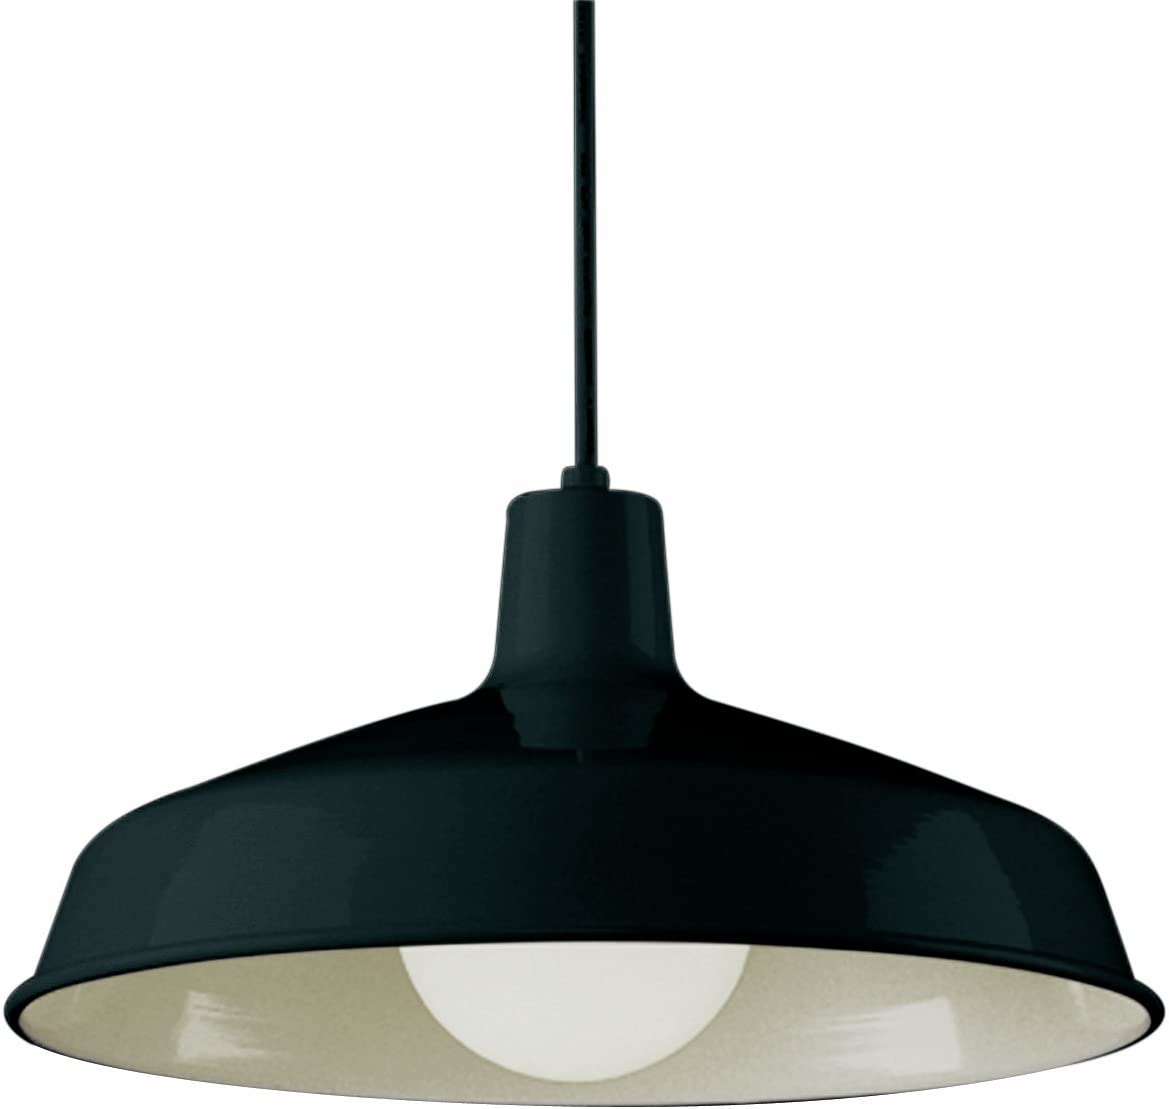 Bel Air Lighting Trans Globe Imports 1100 BK Restoration One Light Pendant from Sherman Collection in Black Finish, 15.50 inches